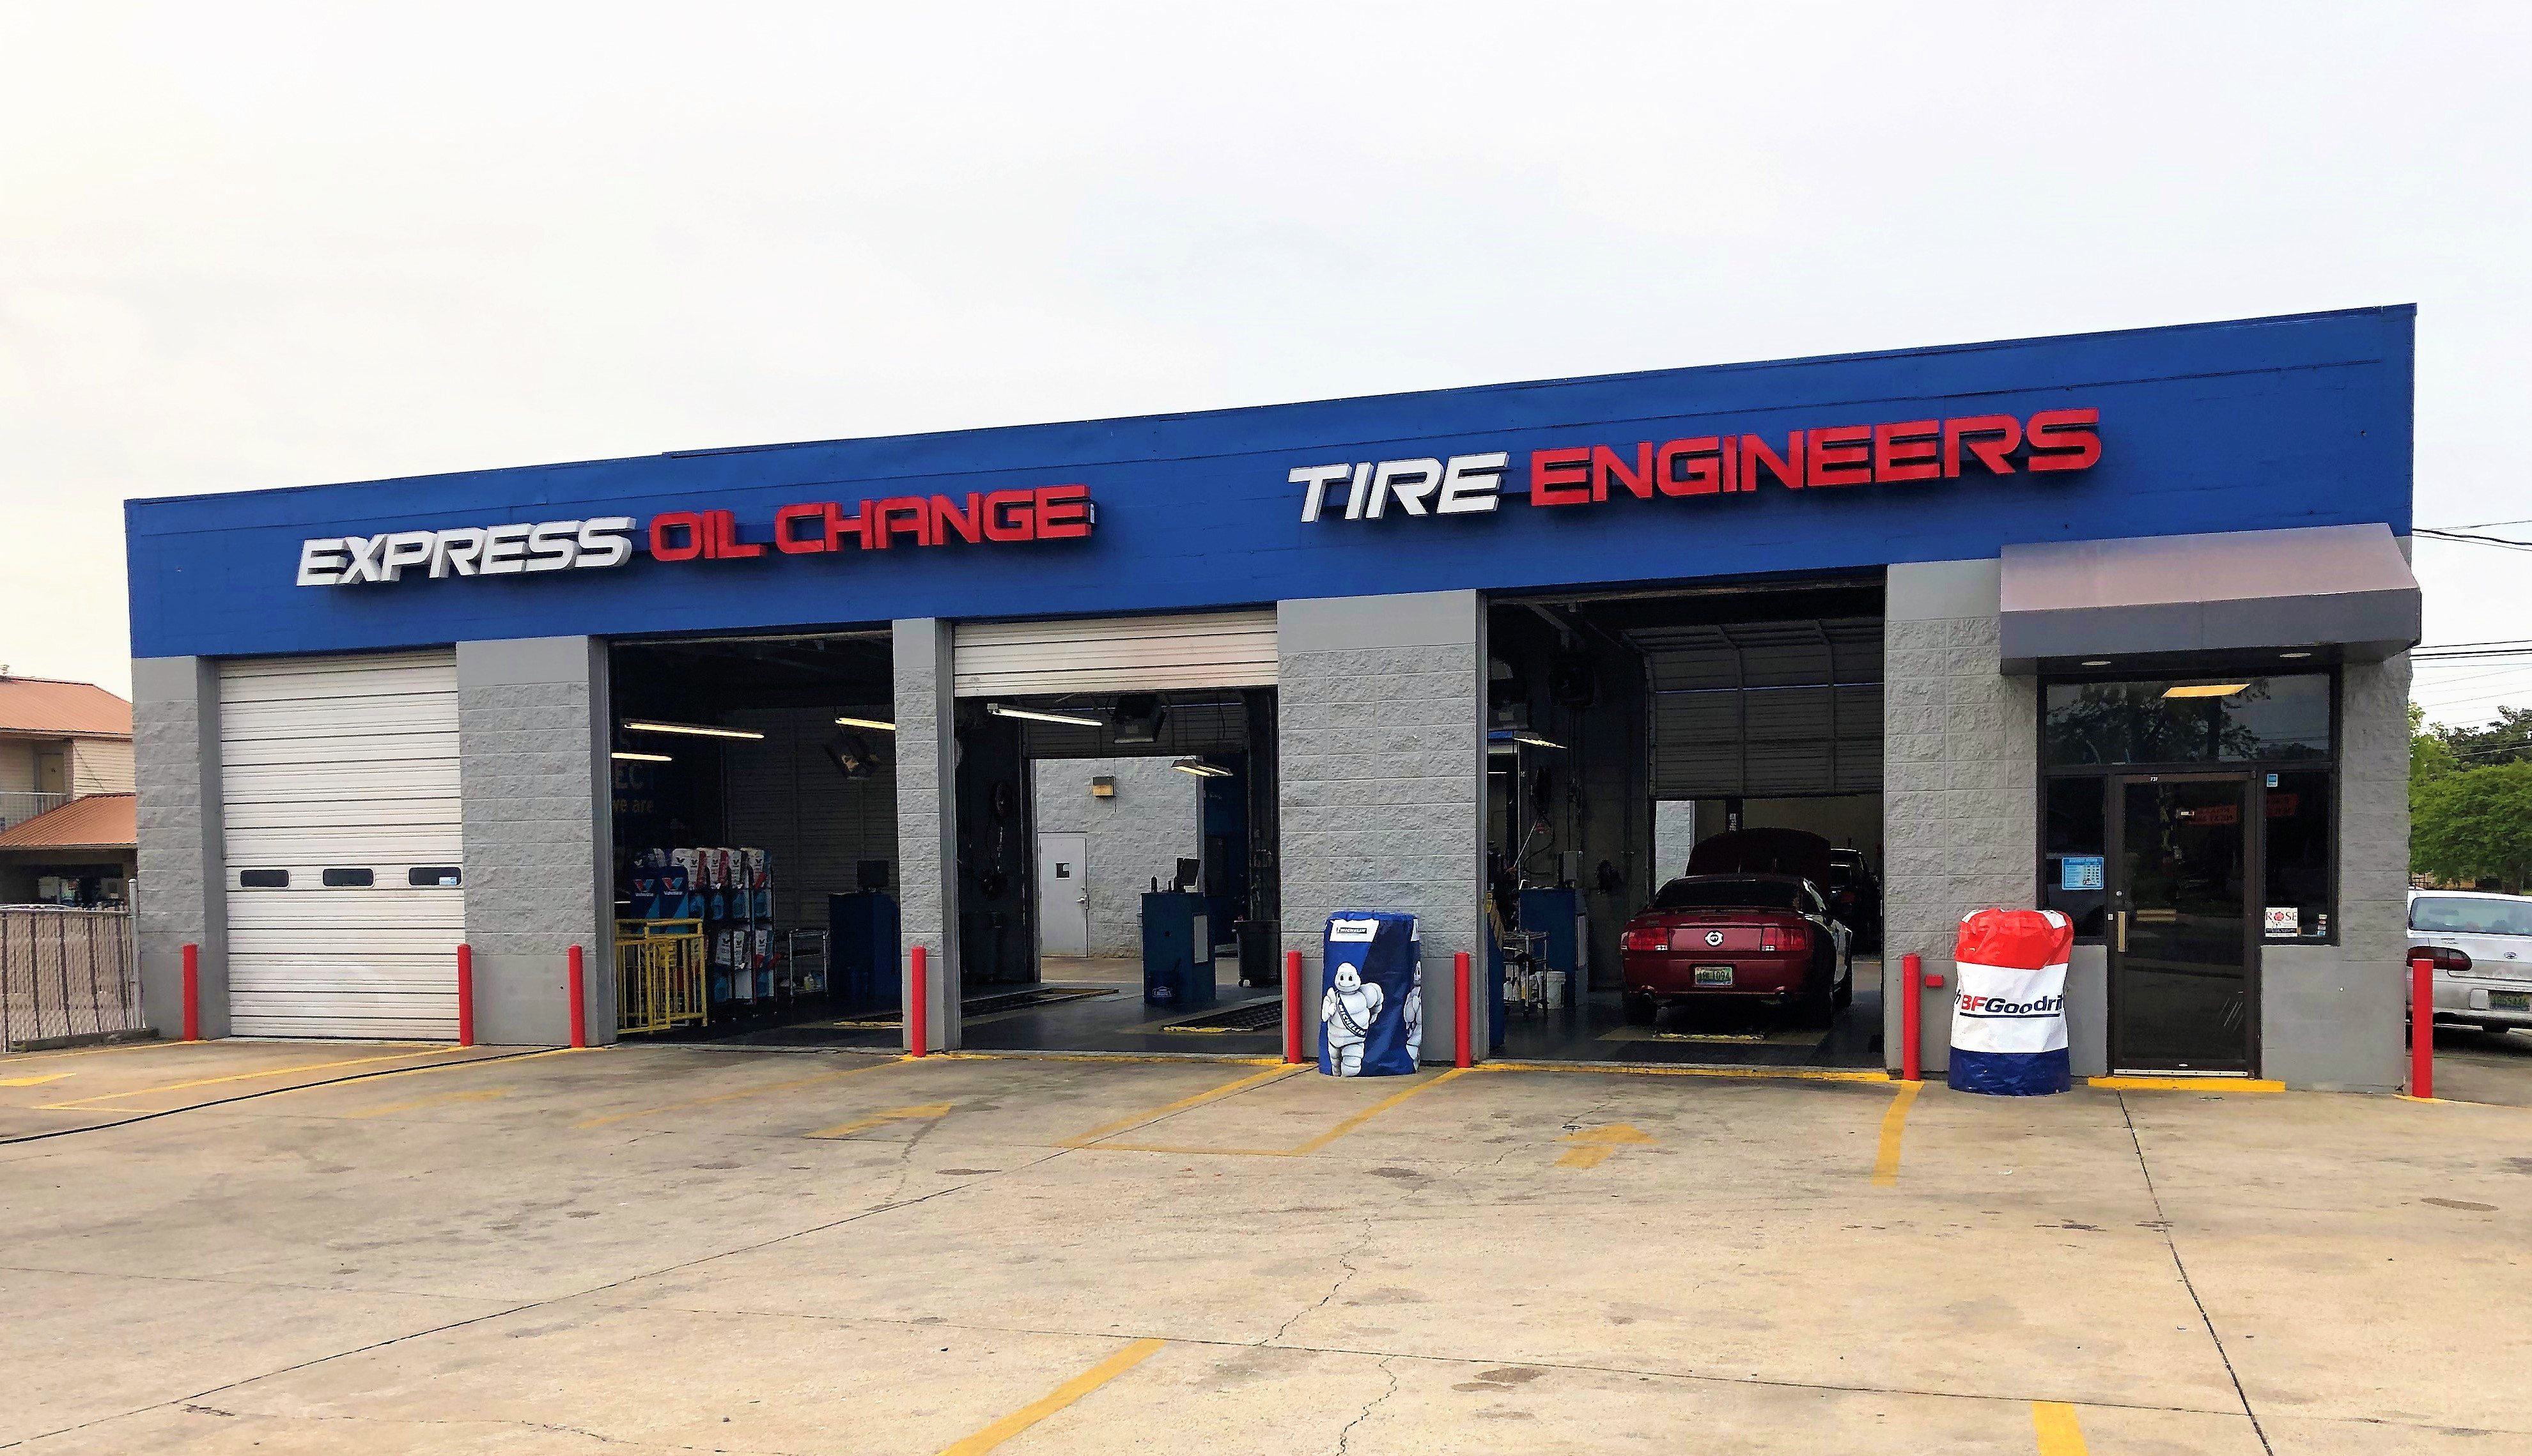 Express Oil Change & Tire Engineers Birmingham, AL - 3rd Avenue West store